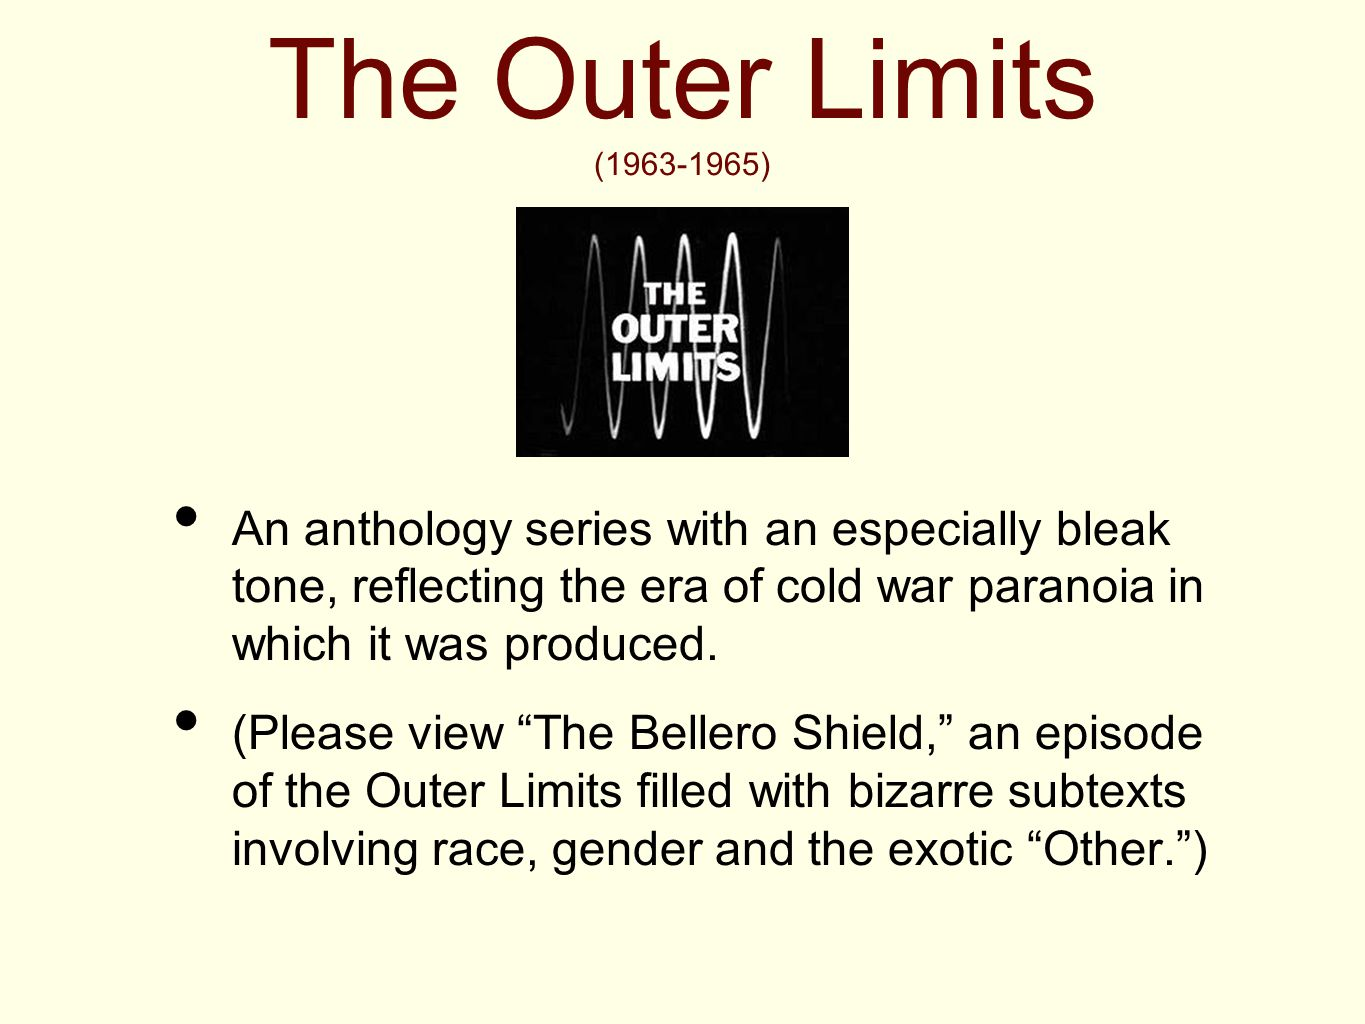 The Outer Limits (1963-1965) An anthology series with an especially bleak tone, reflecting the era of cold war paranoia in which it was produced.